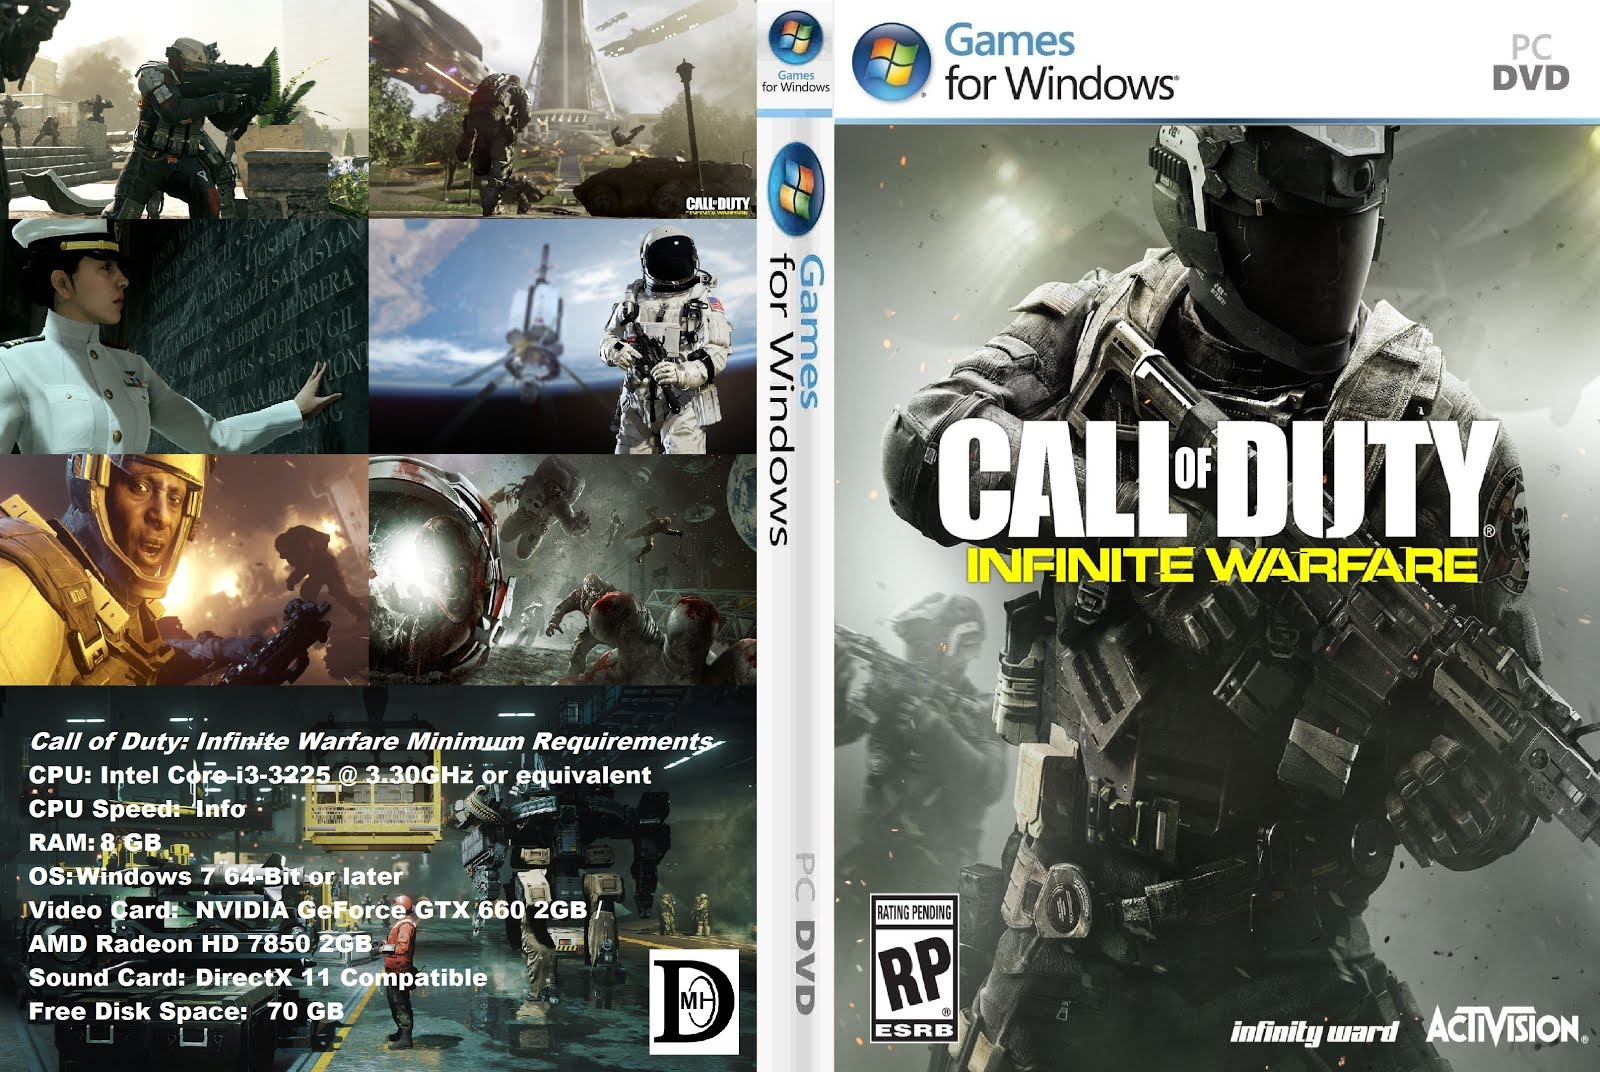 Free Download Game Cracks and Game Covers: 2016/2015 Game Covers